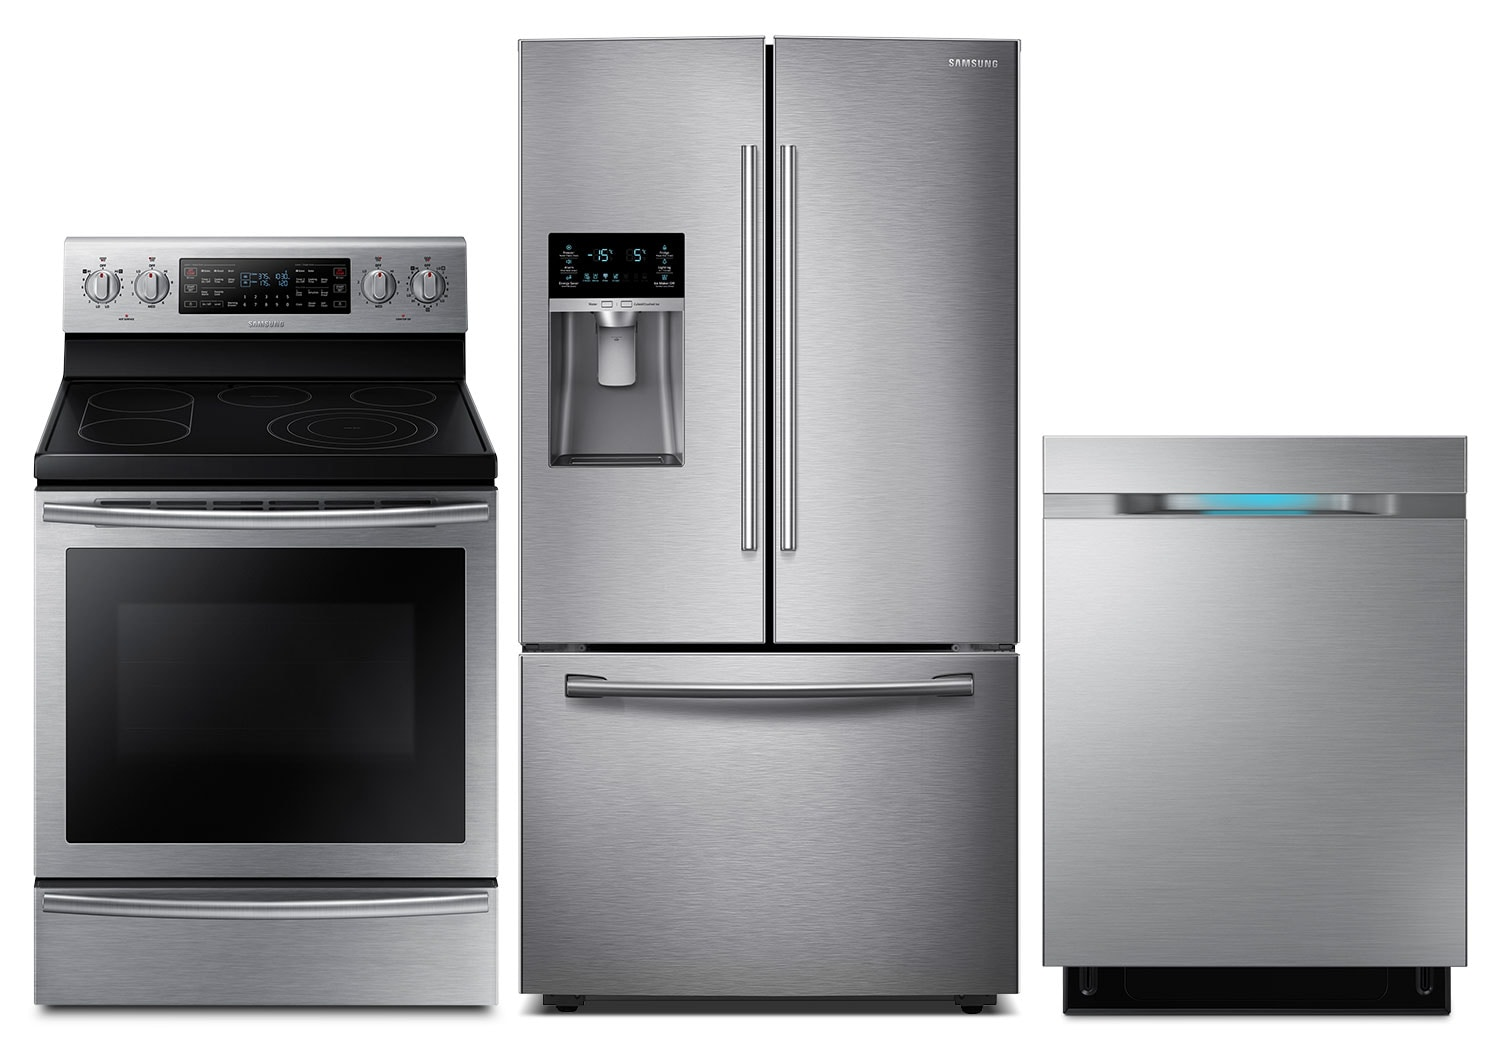 Cooking Products - Samsung 28 Cu. Ft. Refrigerator, 5.9 Cu. Ft. Range and Dishwasher - Stainless Steel